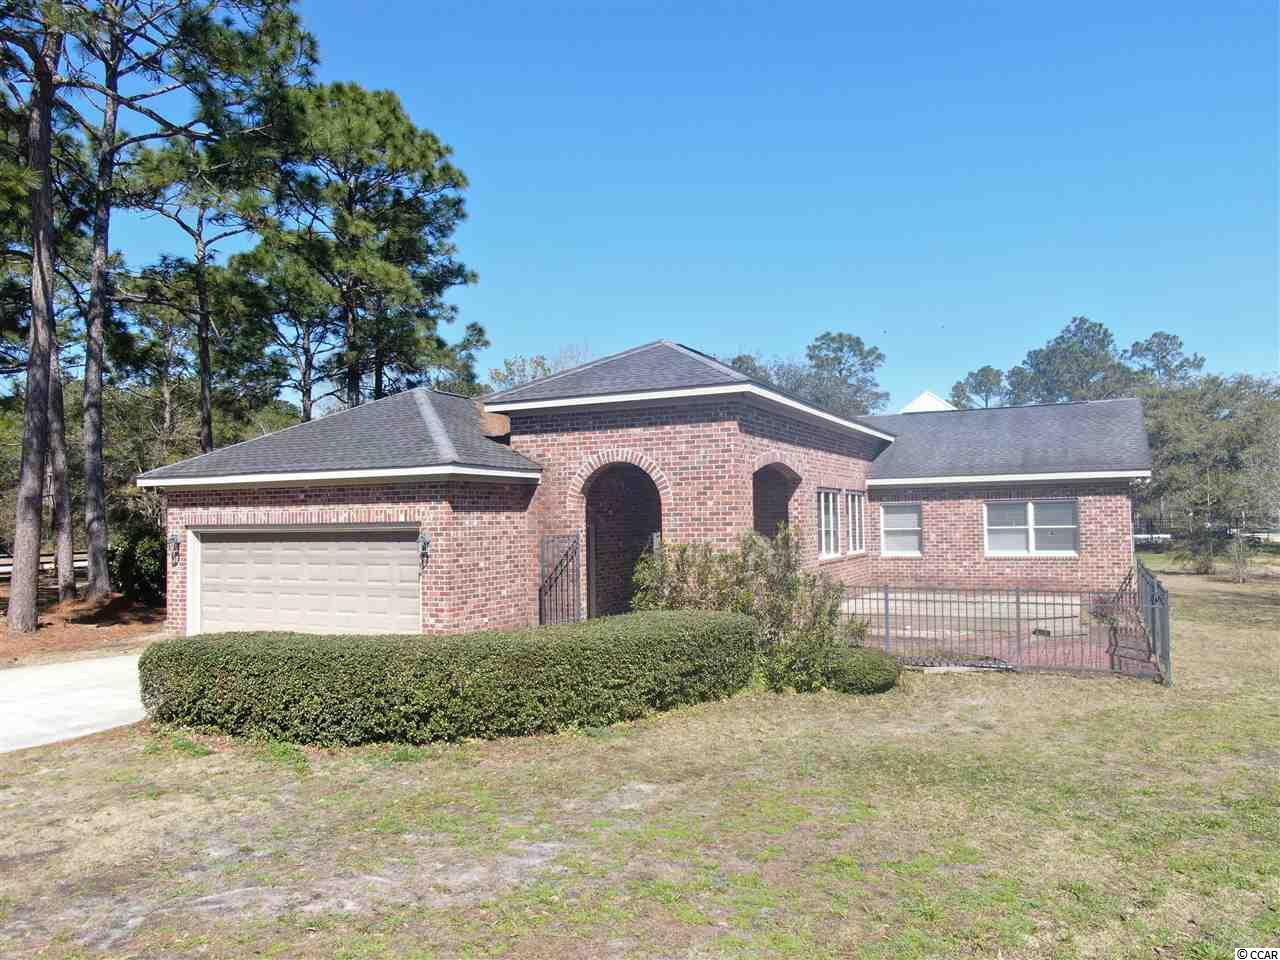 Oozing with character, this rare find in Pawleys Island boasts over an acre and a half of land boarding a private pond. As you enter through the brick arches , you will immediately notice the quality of construction and functionality you will soon call home. Upgrades / features include a private brick courtyard overlooking the water, Mexican tile and hardwood flooring throughout much of the house,  semi-custom cabinetry, and a plethora of unique architectural features. This area is arguably one of the most sought after locations in Pawleys Island and won't last long.